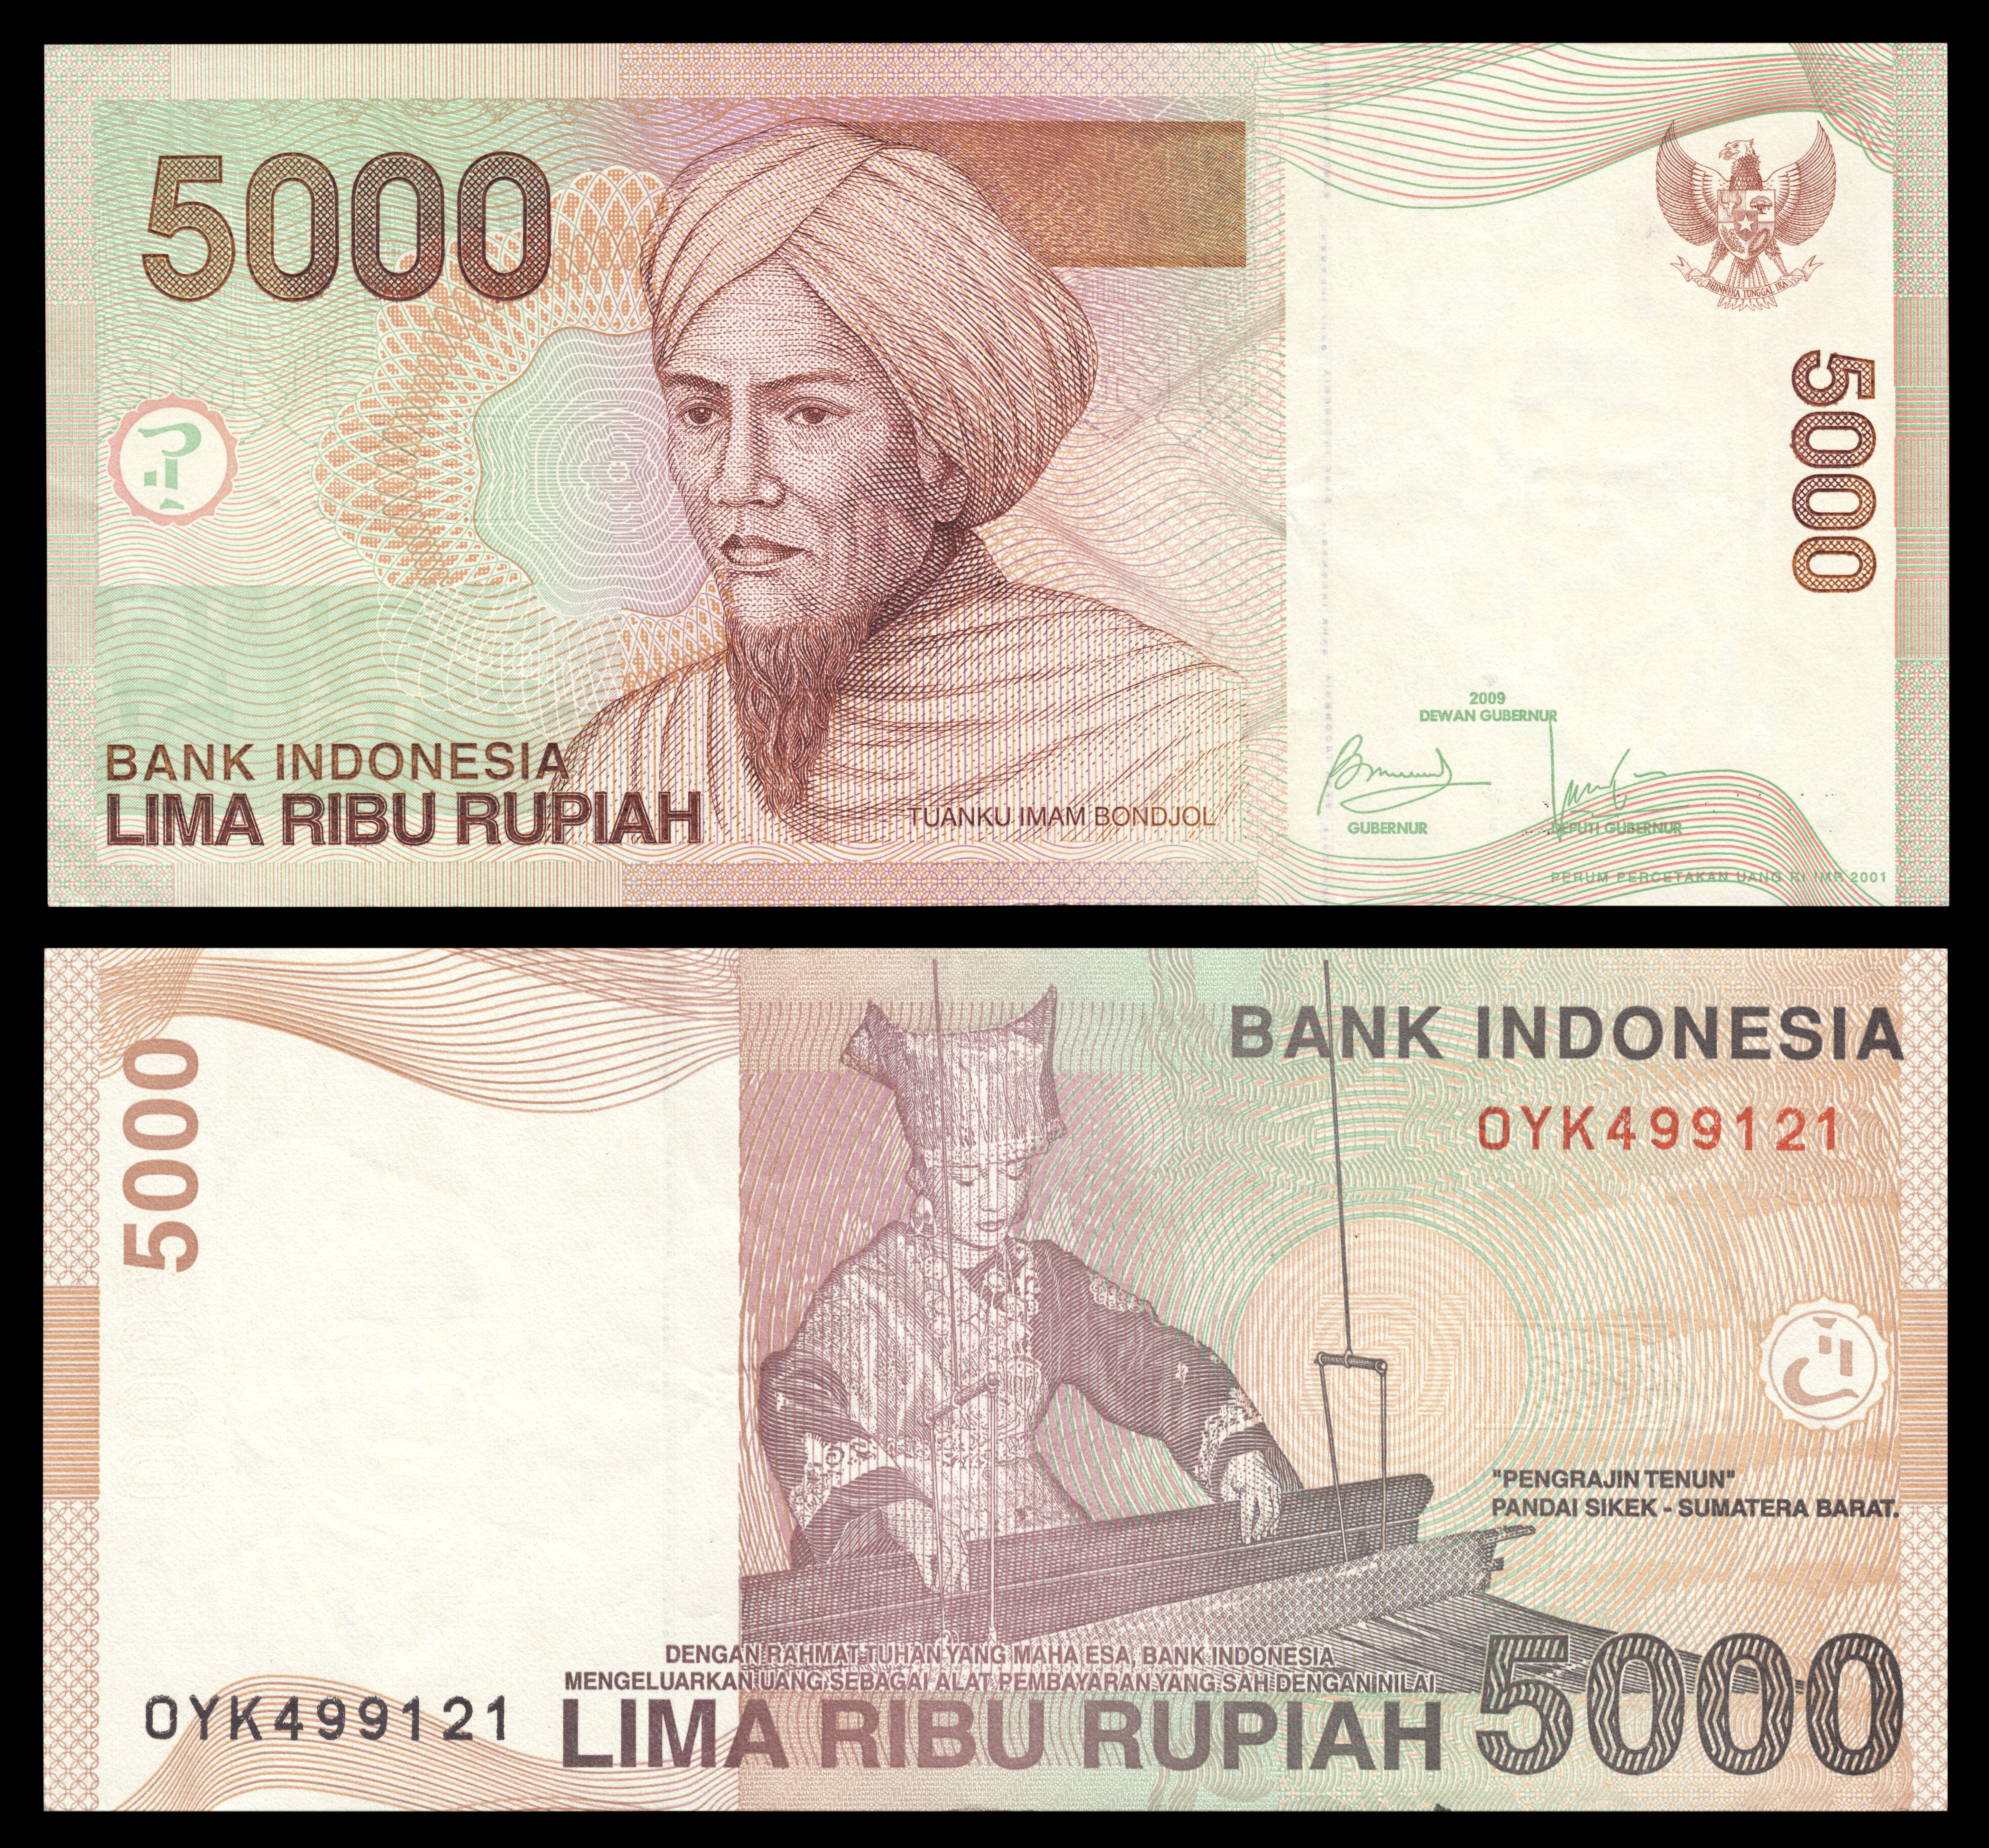 File 5000 Rupiah Bill 2001 Series 2009 Date Processed Obverse And Reverse Jpg